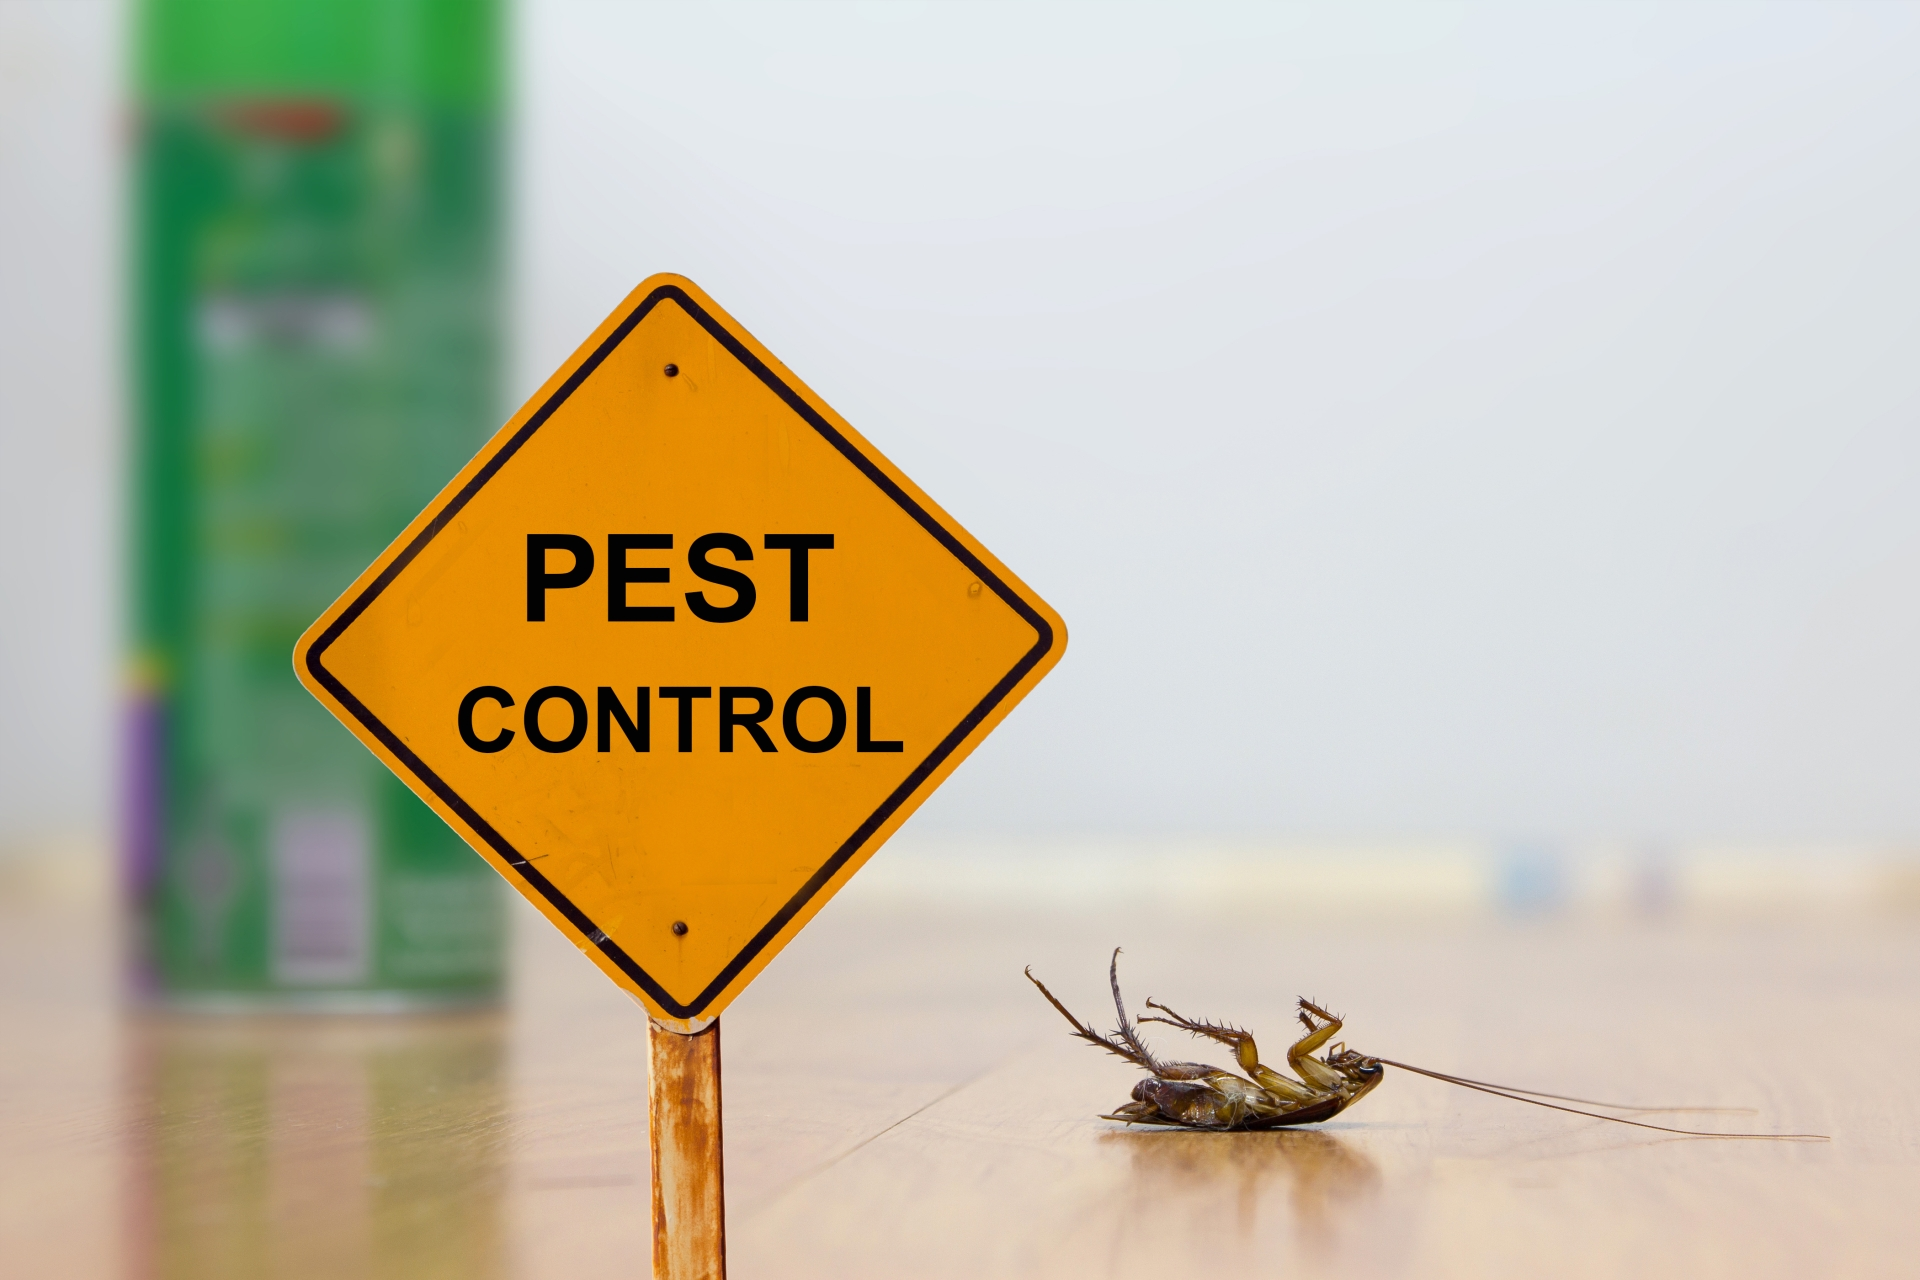 24 Hour Pest Control, Pest Control in Canning Town, North Woolwich, E16. Call Now 020 8166 9746